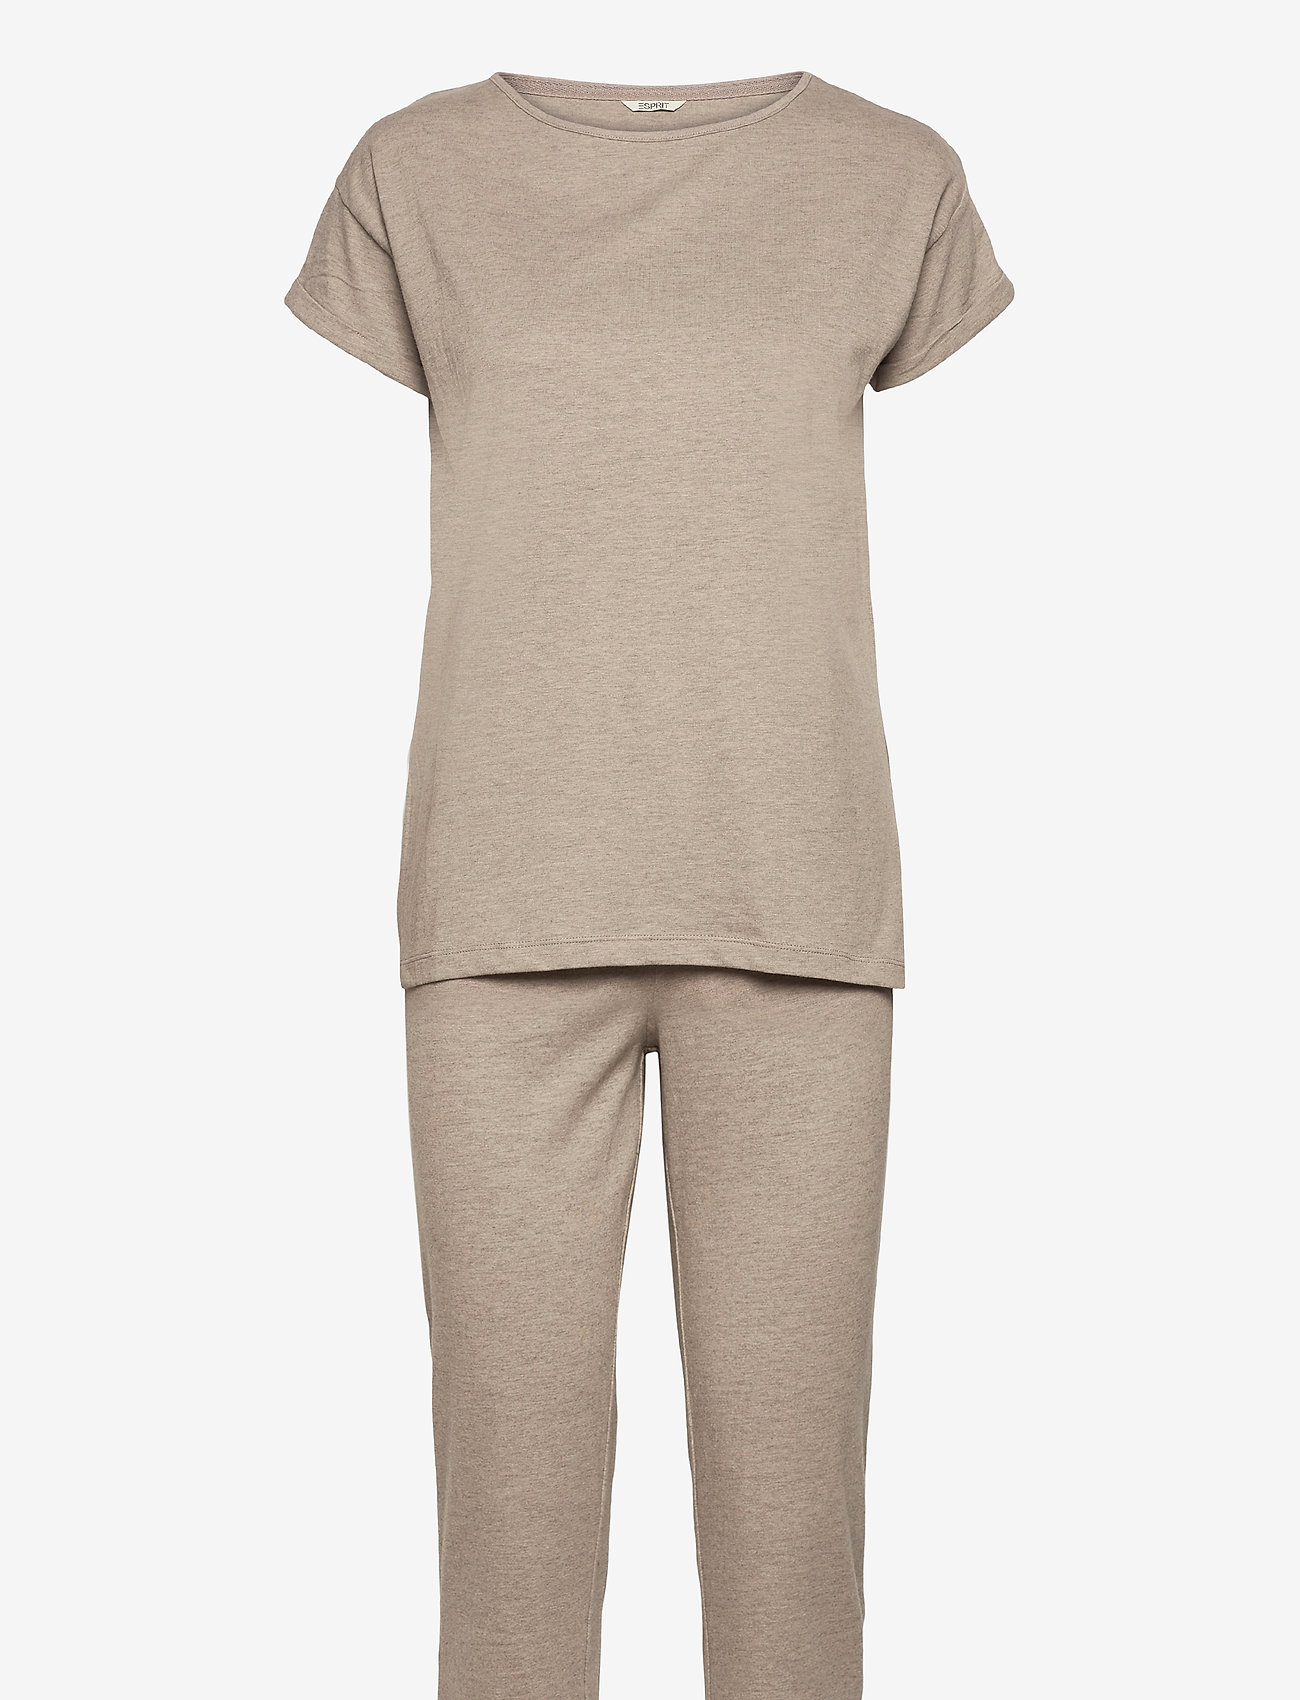 Esprit Bodywear Women - Pyjamas - pyjama''s - light taupe 2 - 0